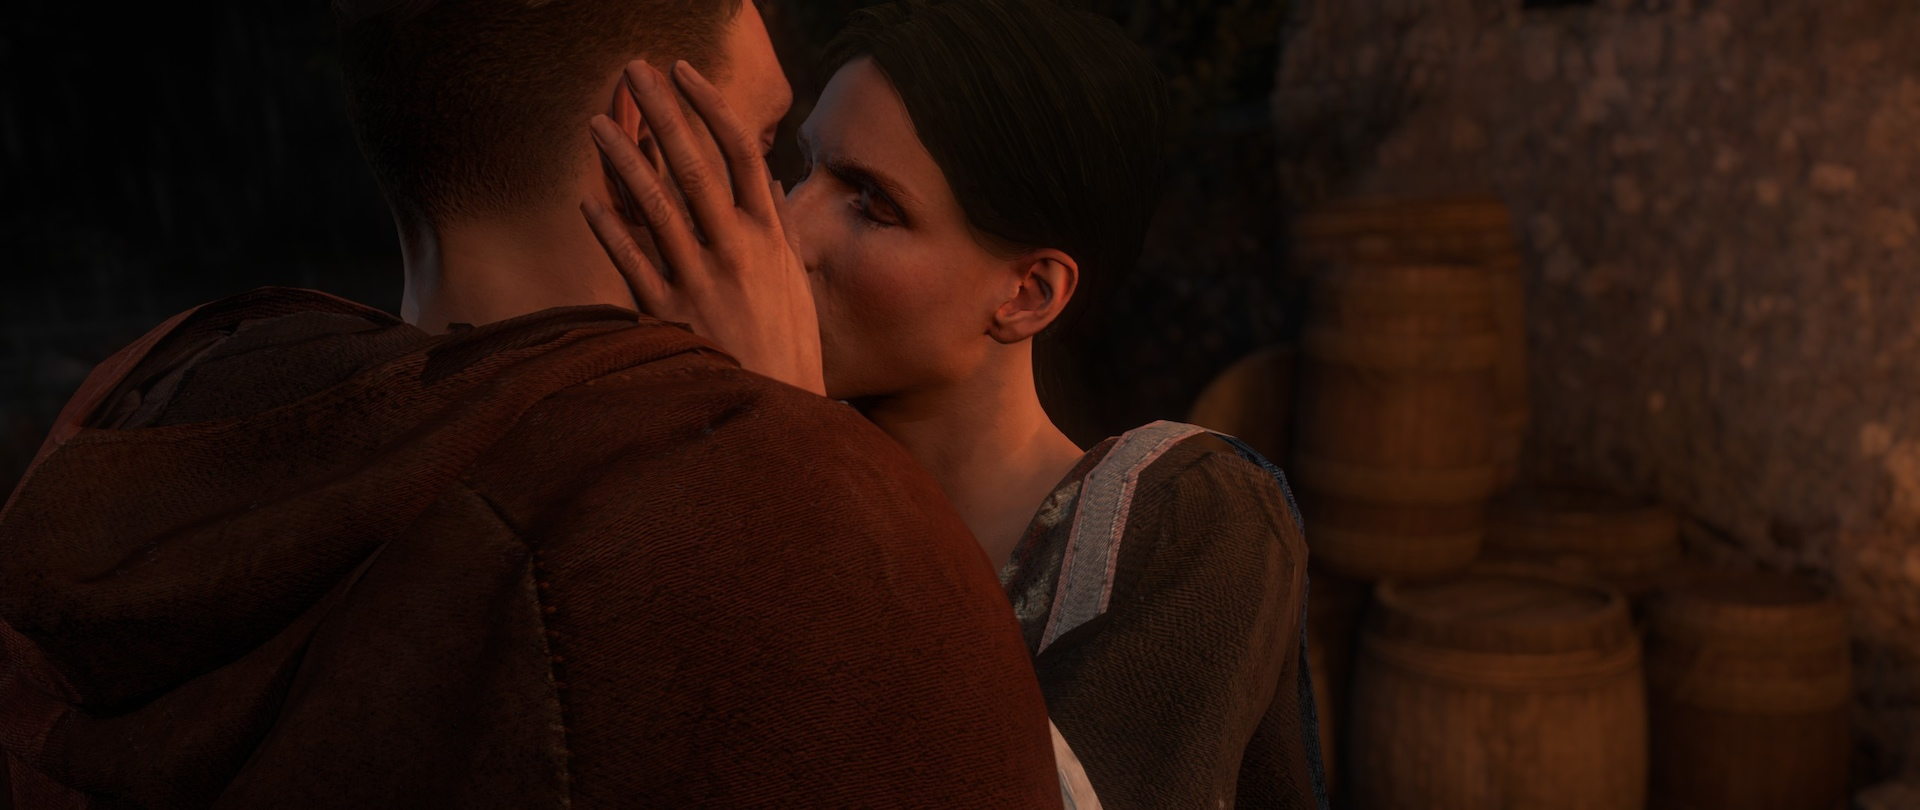 загруженное (22).jpg - Kingdom Come: Deliverance